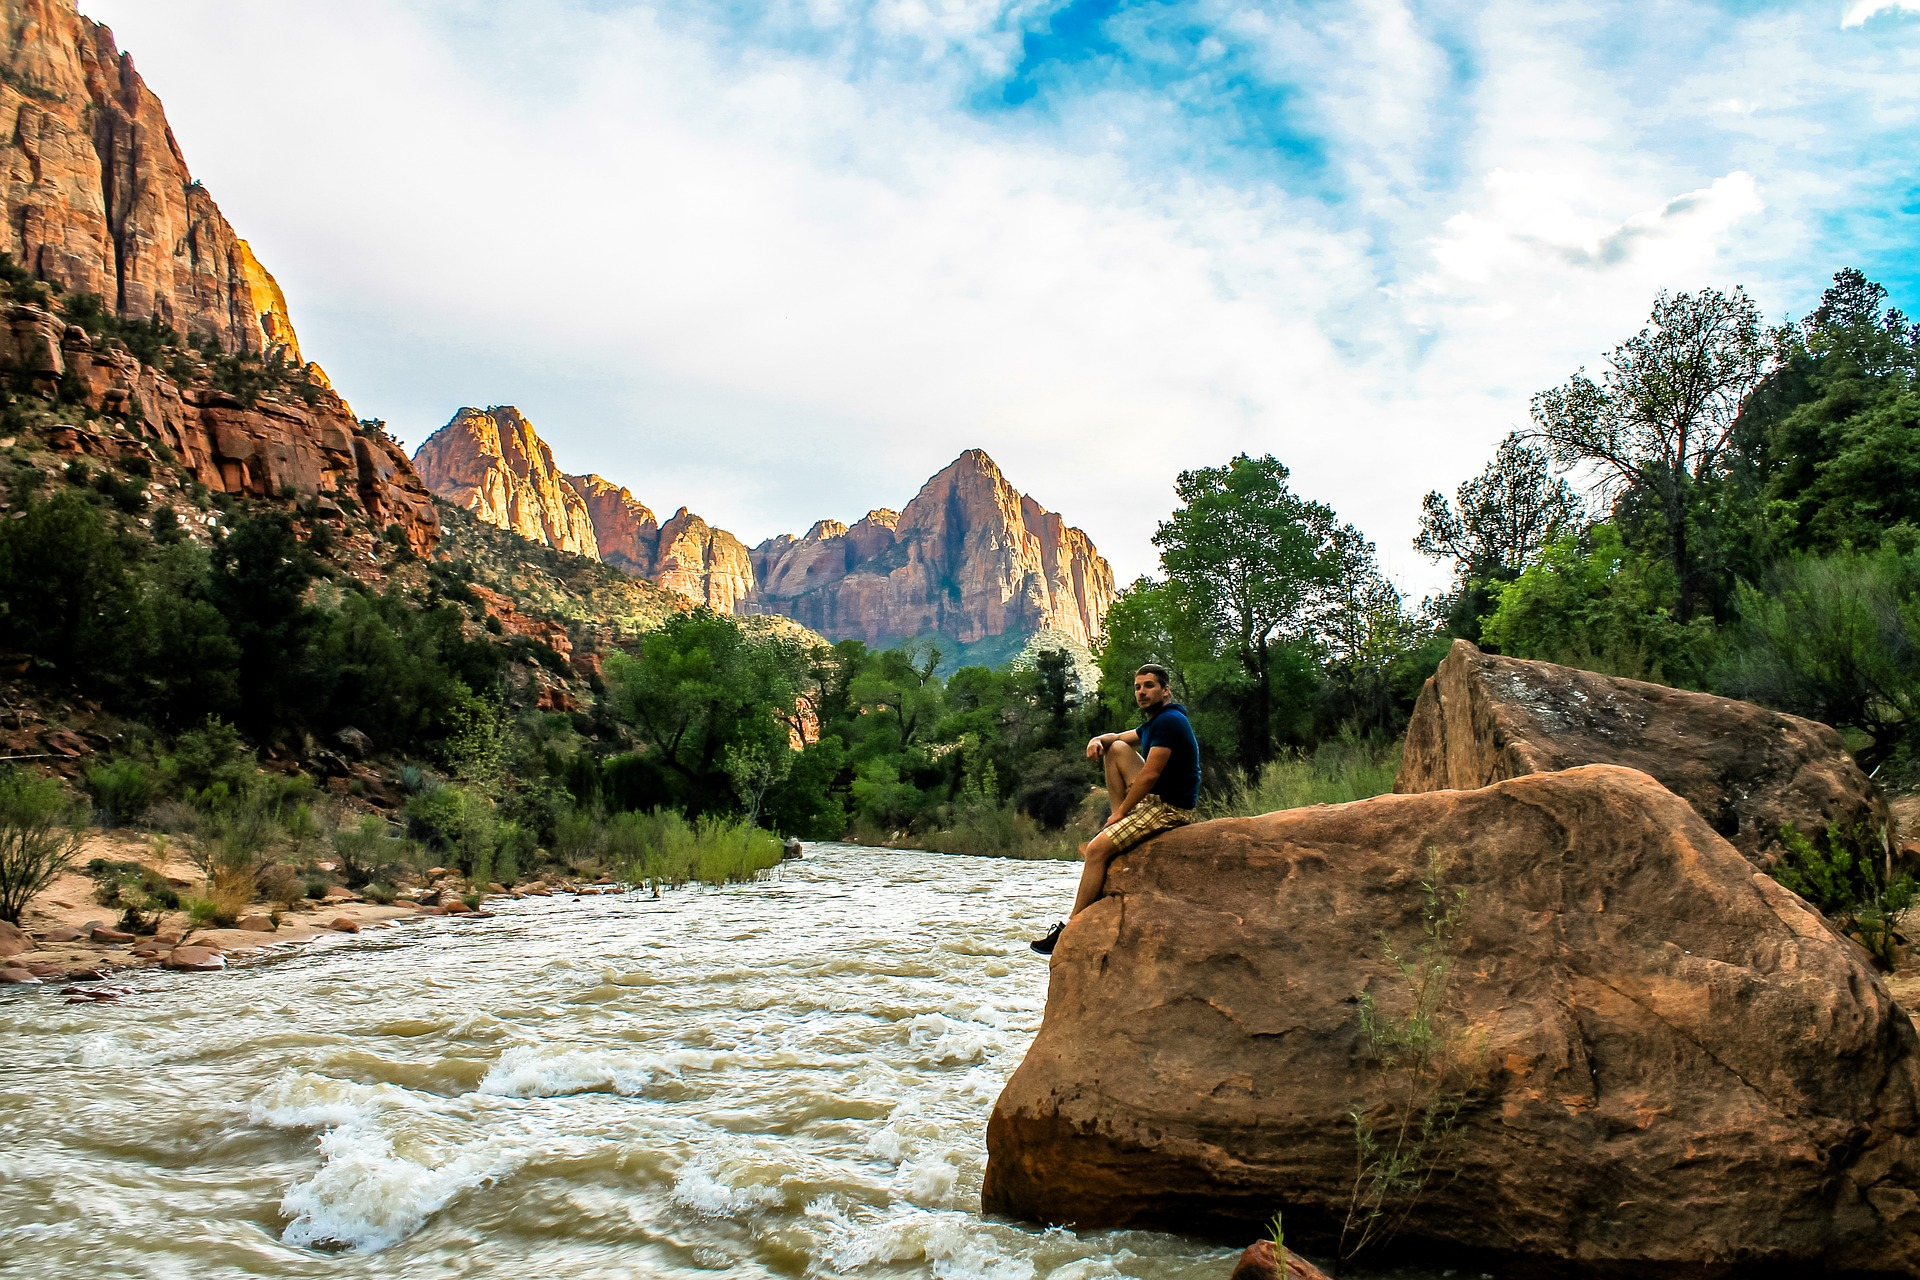 A man relaxes by the foaming Virgin River in Zion National Park.